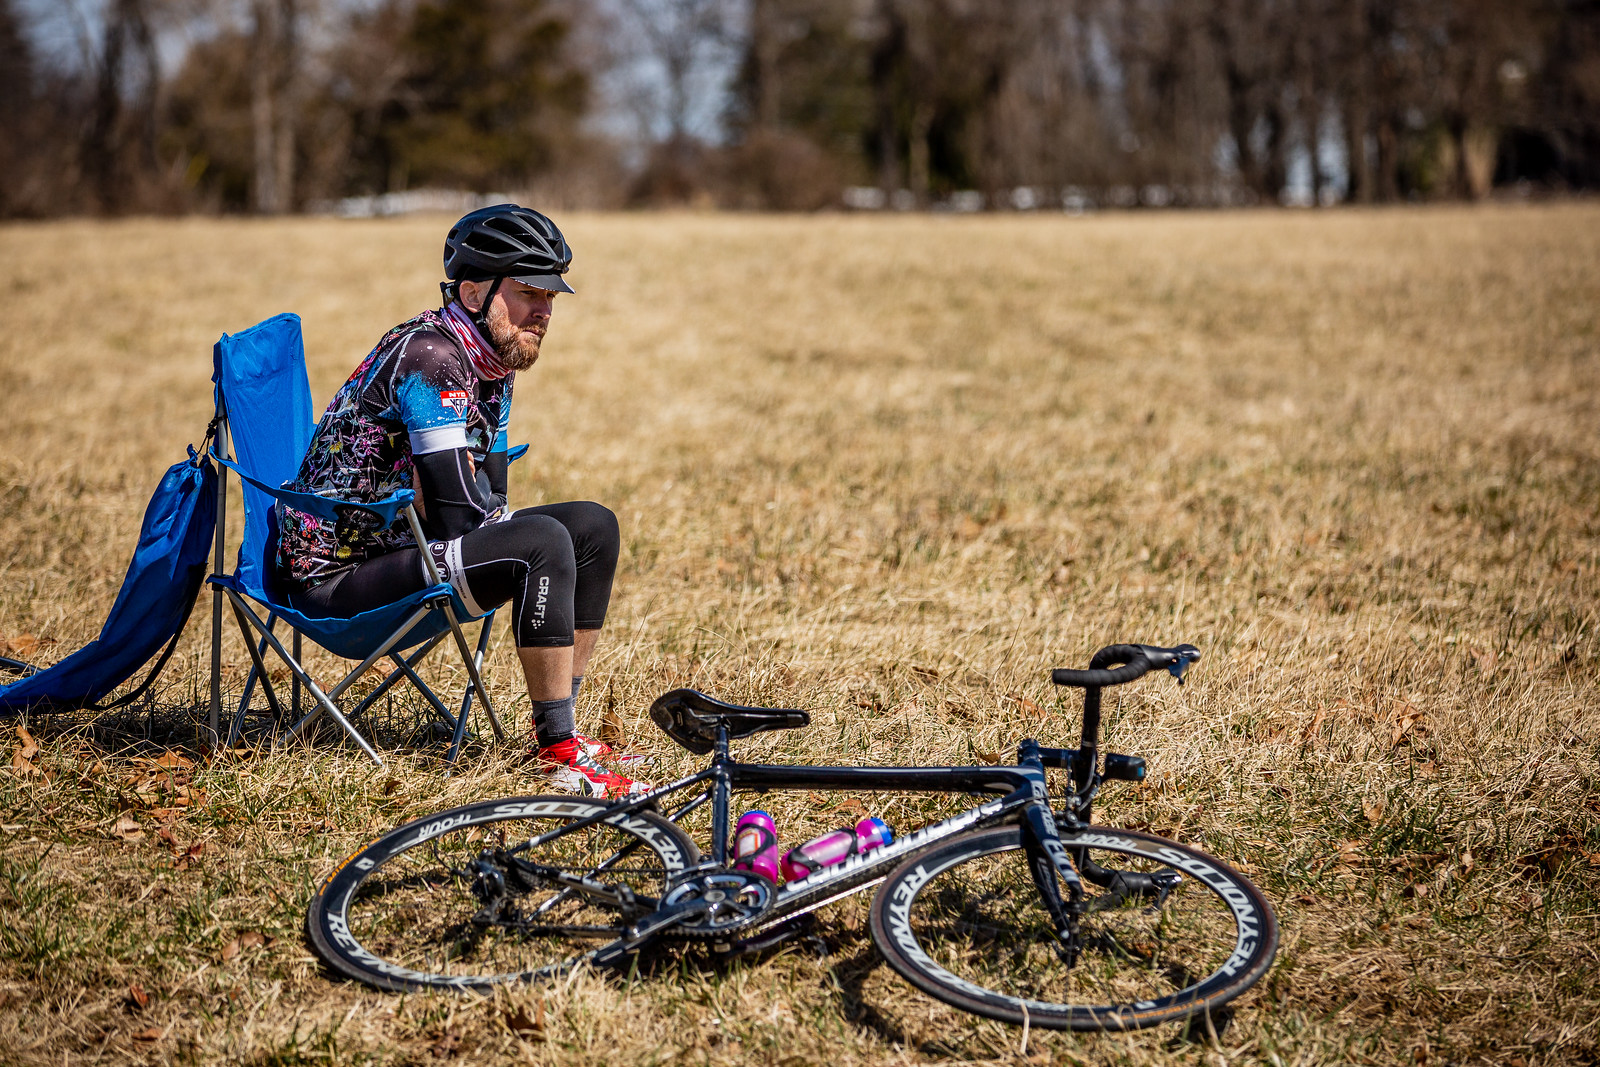 A rider takes a load off during the 2019 Hell of Hunterdon, contemplating his day out so far.